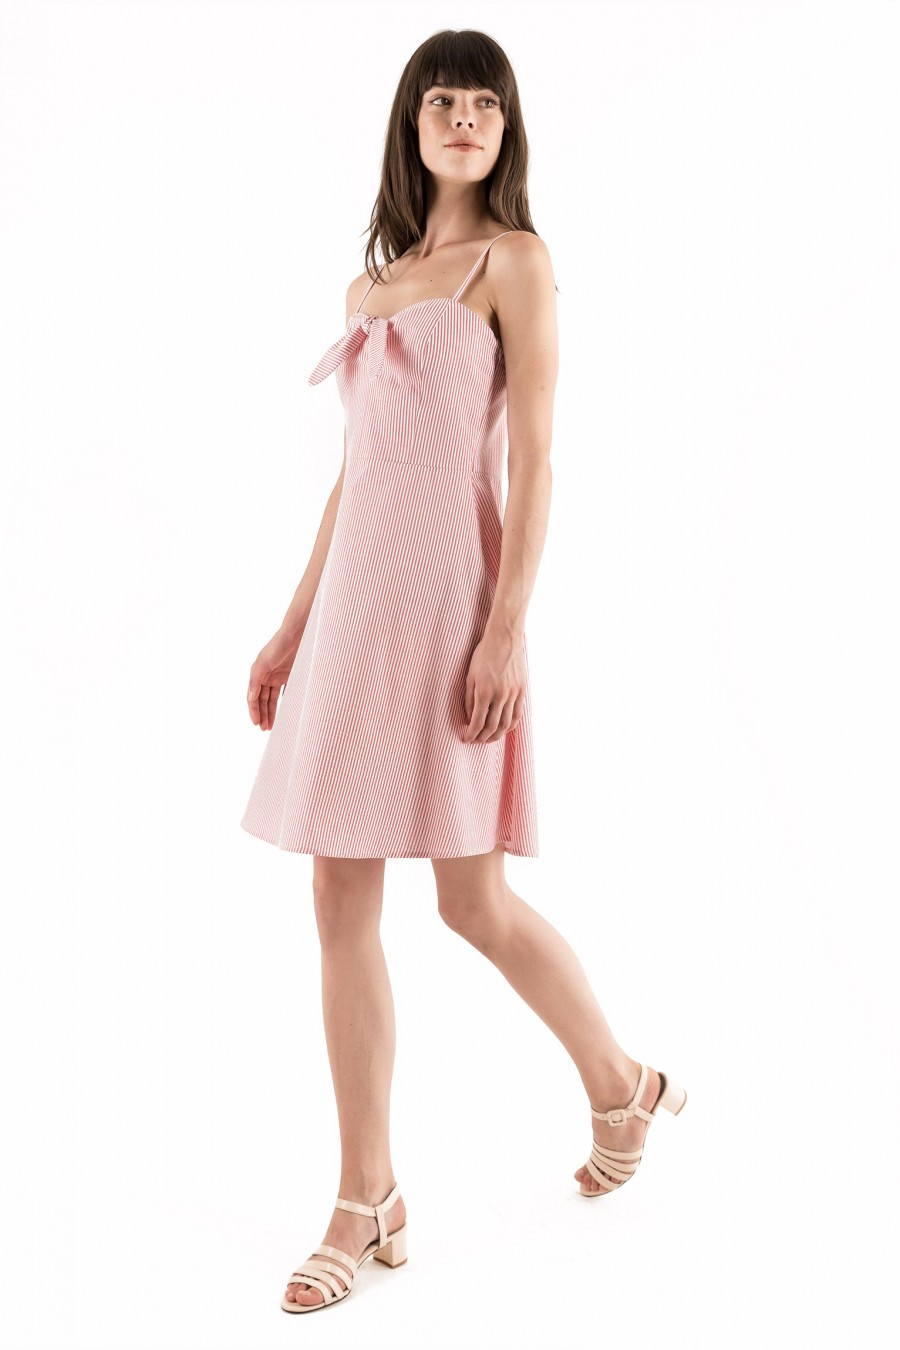 Pink summer dress with ribbon on the top